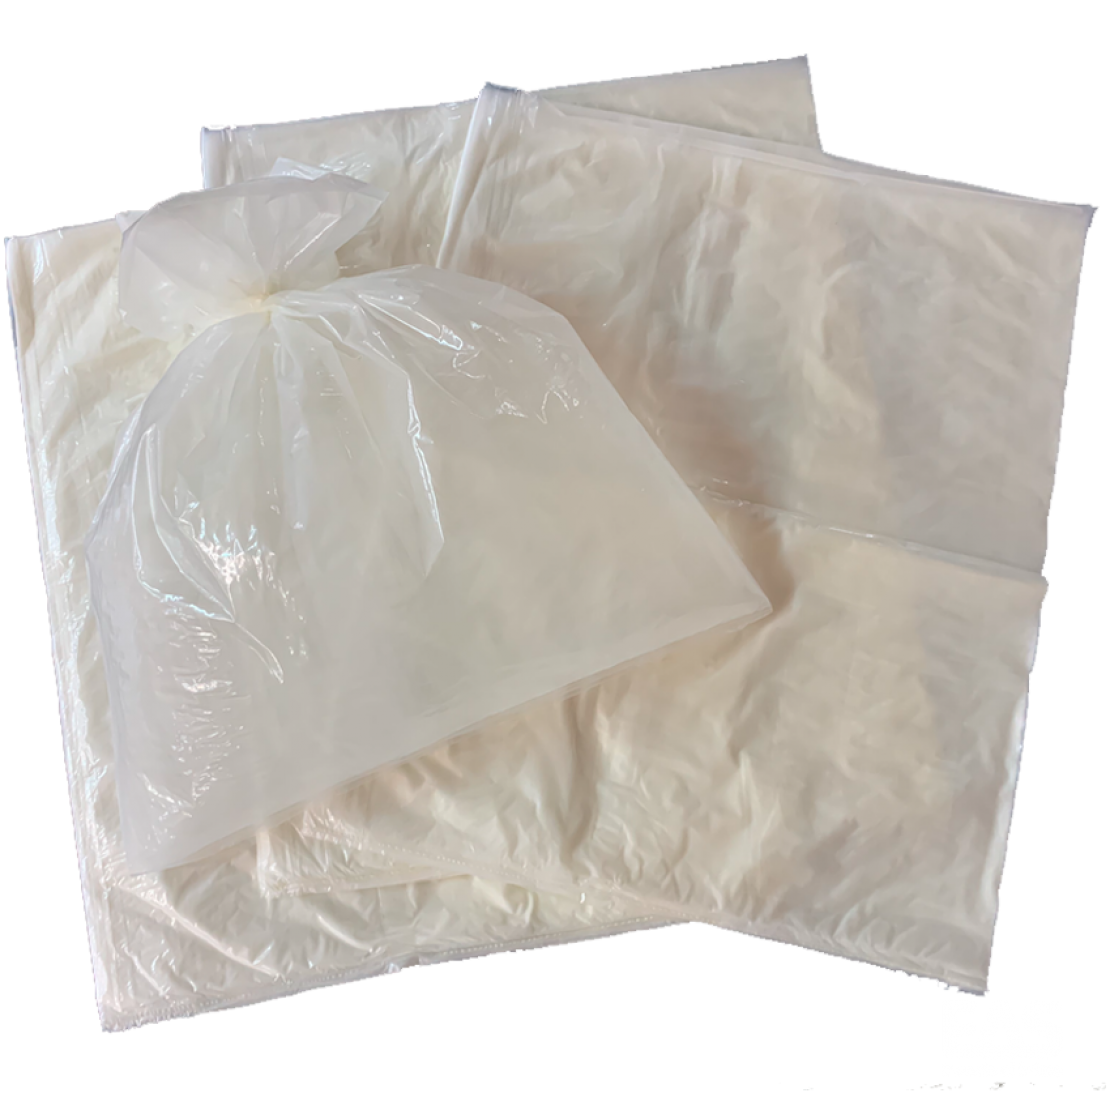 Image of a pack of water-soluble pouches in packs of 100 units for sale in the EAS Escarré online shop.